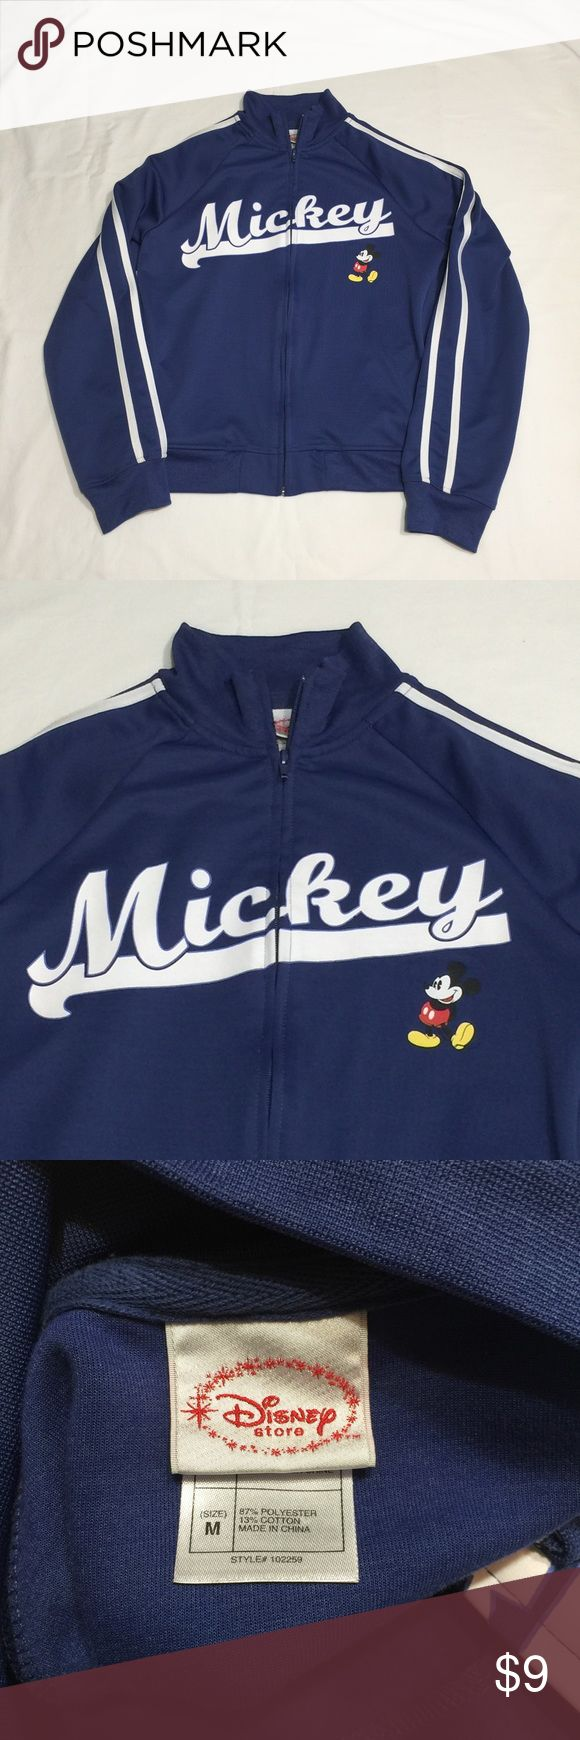 """Mickey Mouse track jacket Size m women's.  Blue zip up.  Has pockets.  22"""" long. 18"""" across front polyester cotton blend.  Mickey front.  Plain blue back. Nice like new condition from the Disney store Disney Jackets & Coats"""